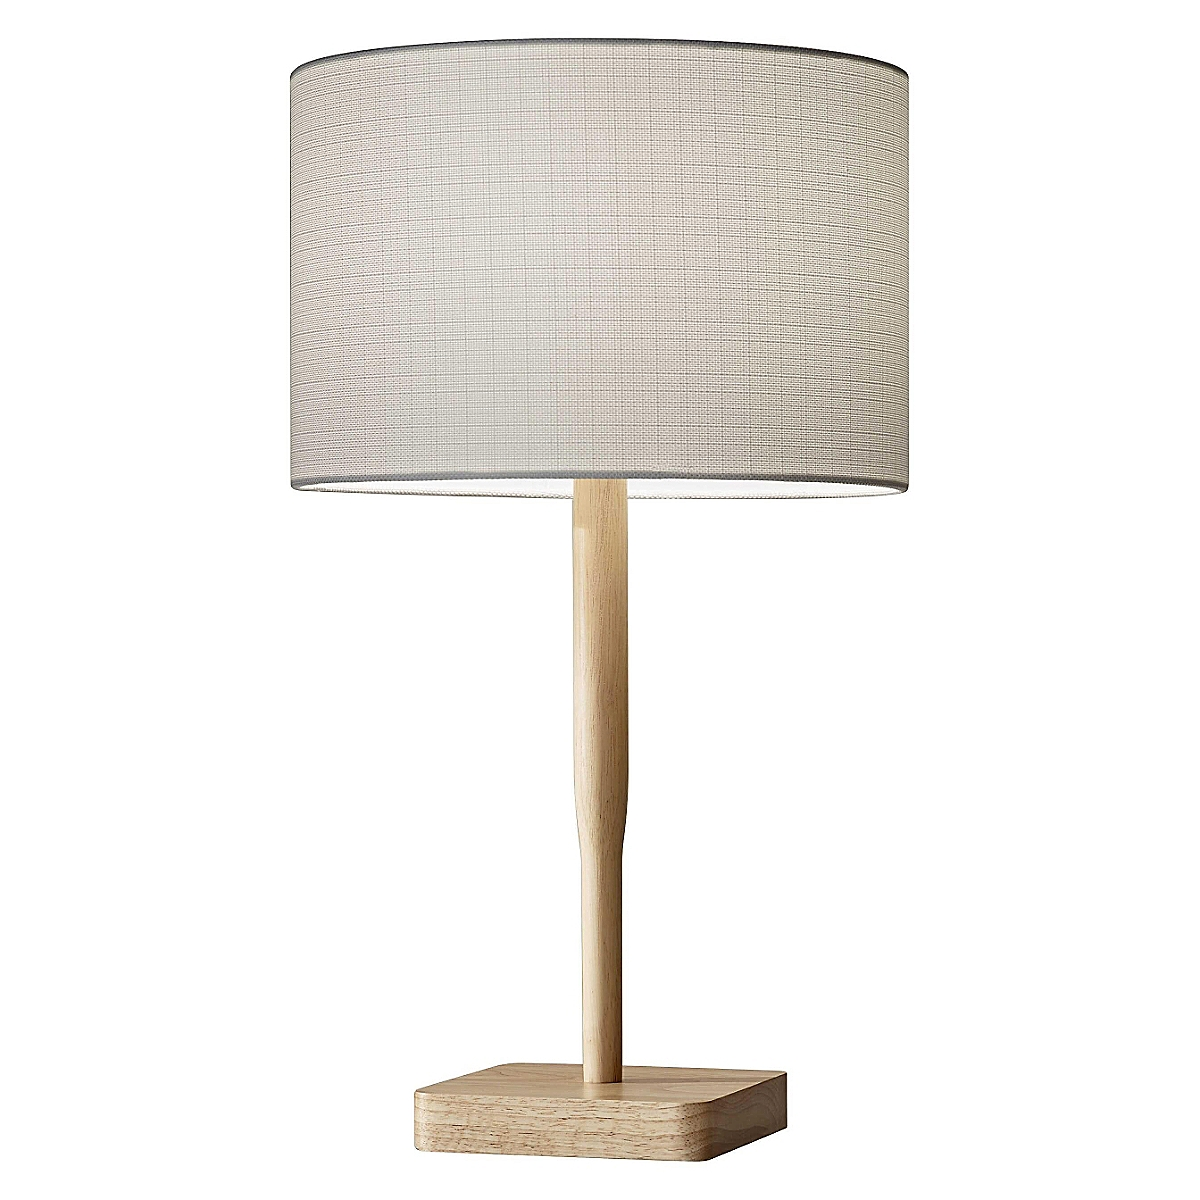 Scandinavian Table Lamp - Light